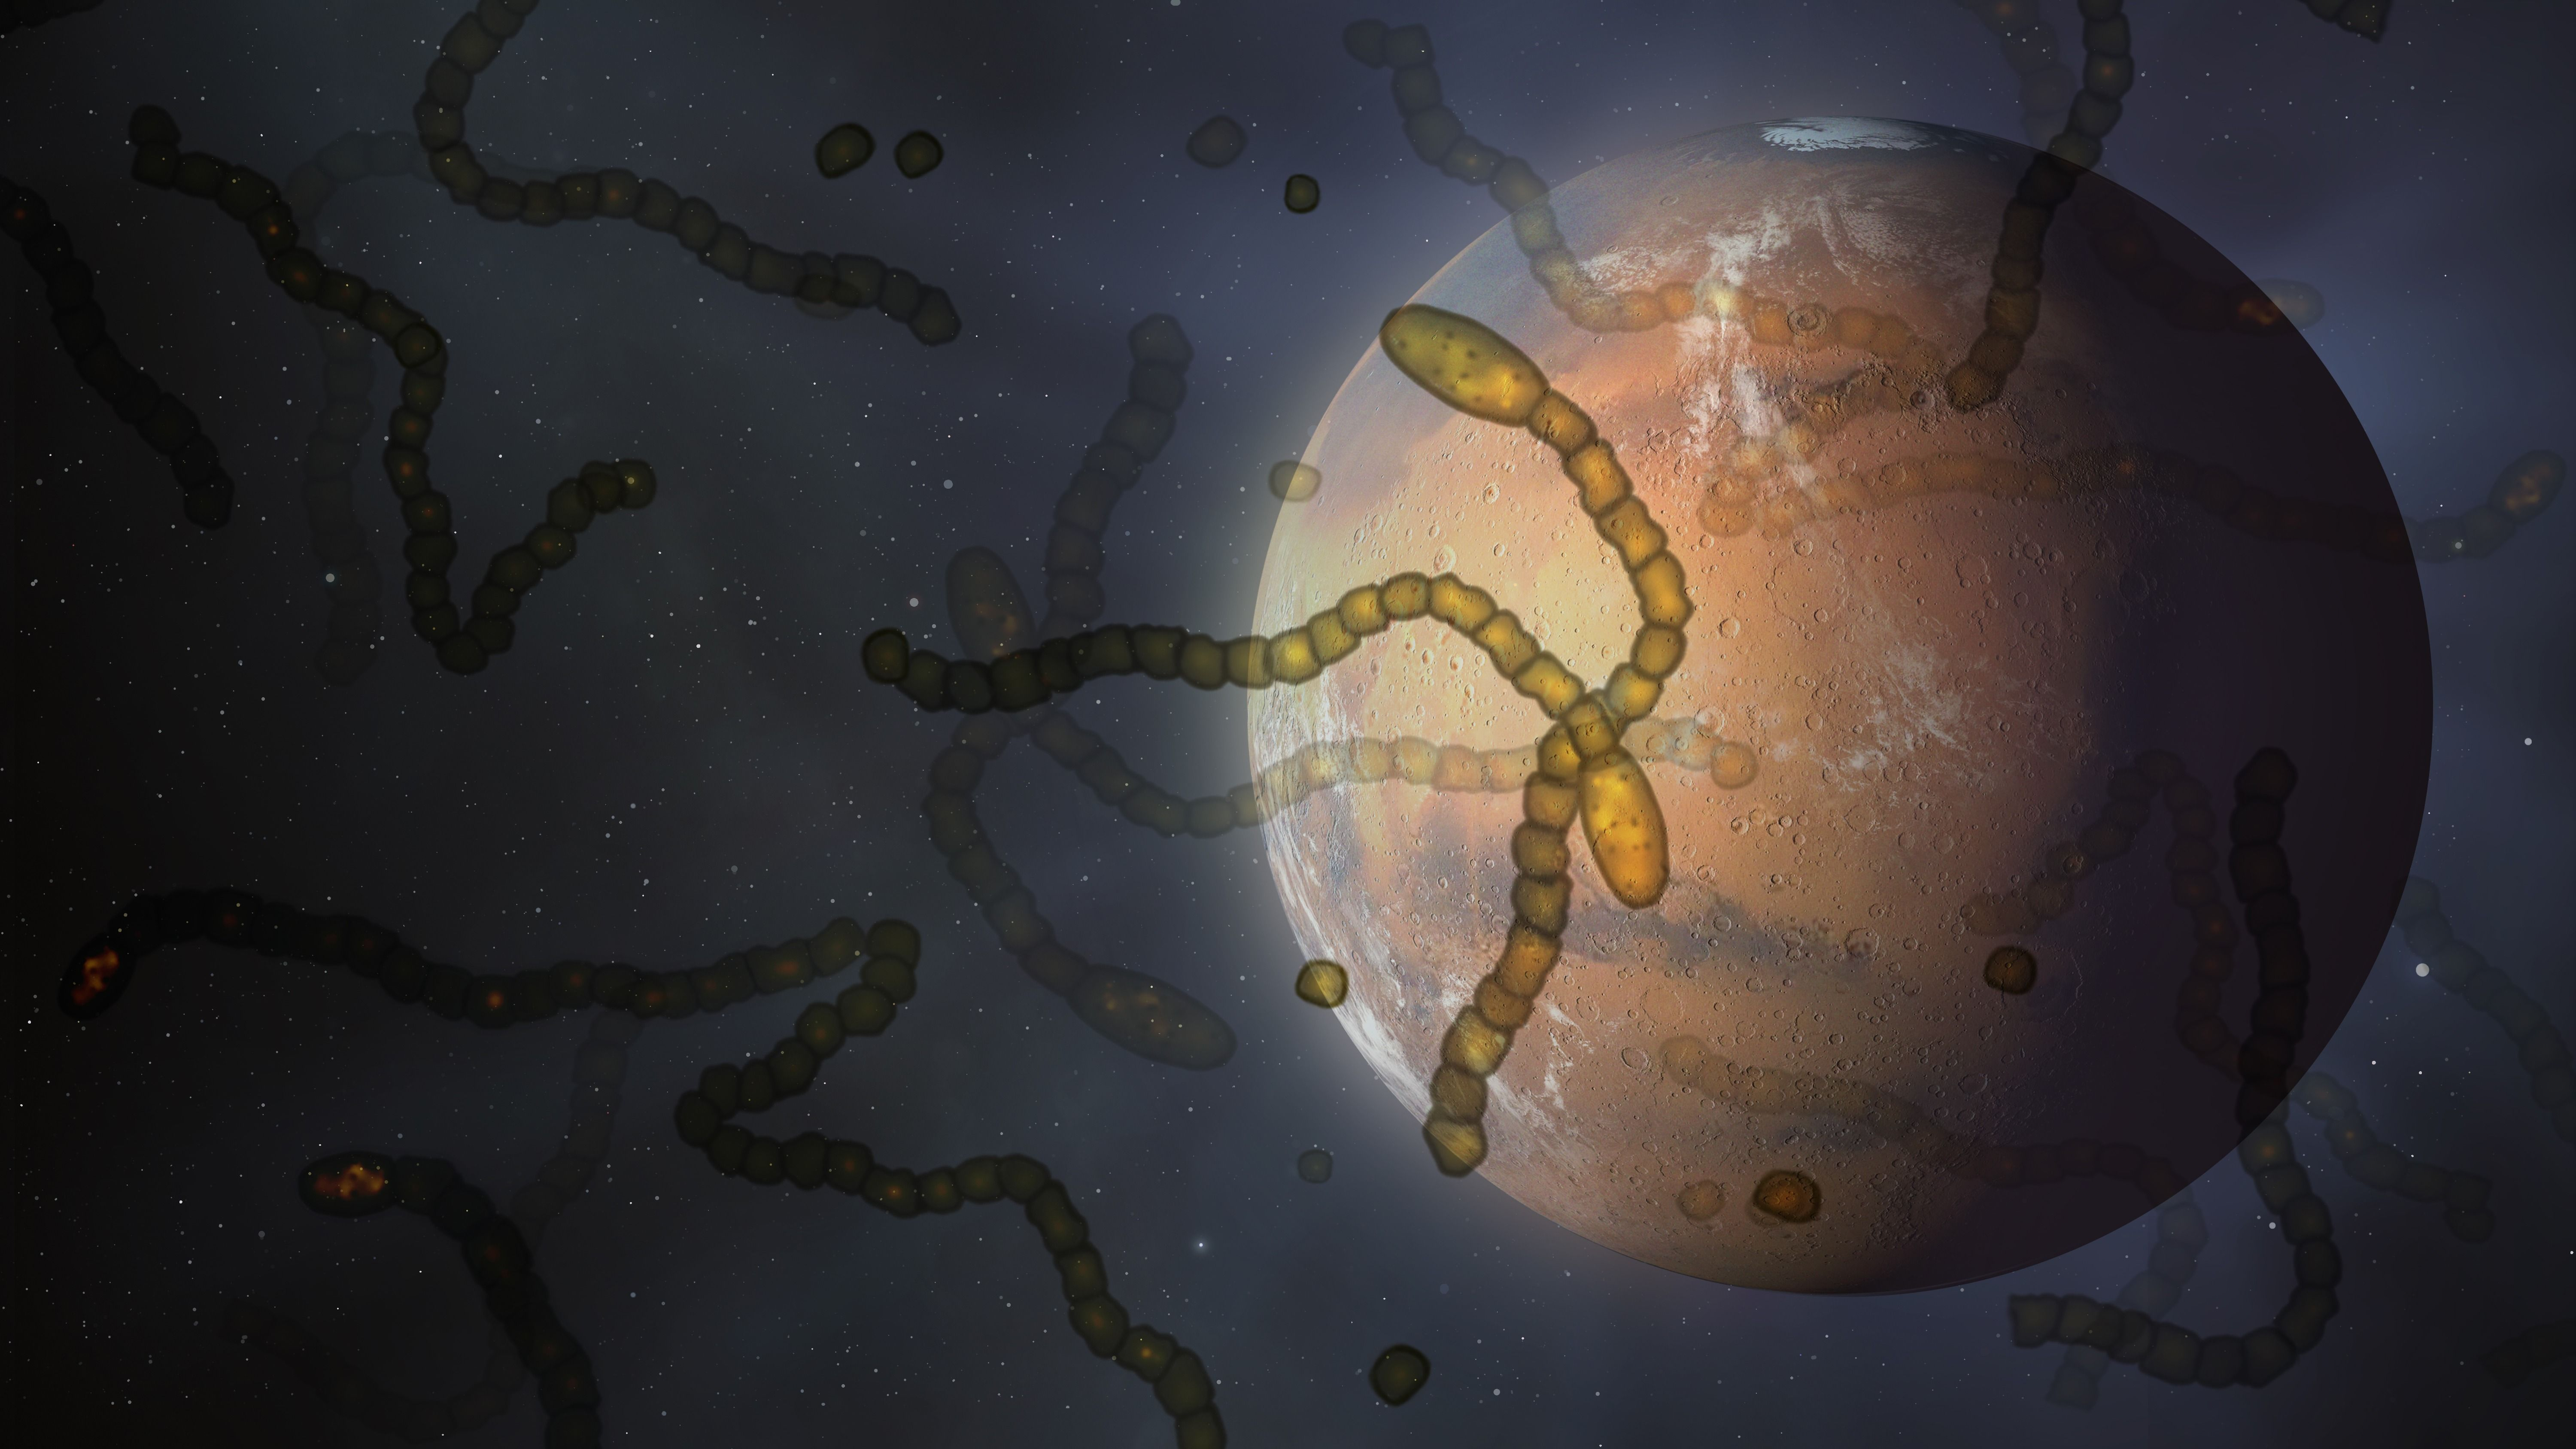 Did Life Come from Somewhere Else? Panspermia Is Possible, Experiment Suggests